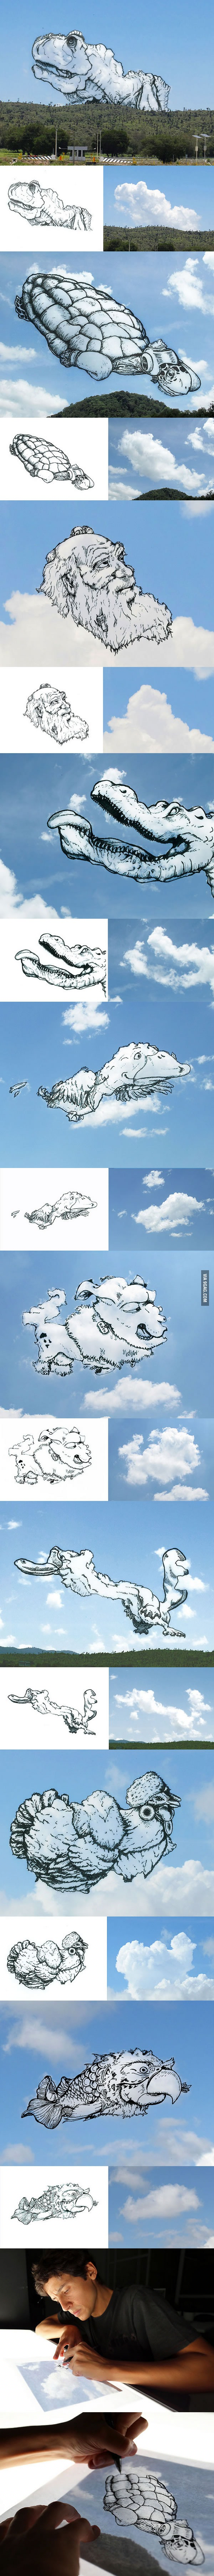 Artist Turns Clouds Into Illustrations